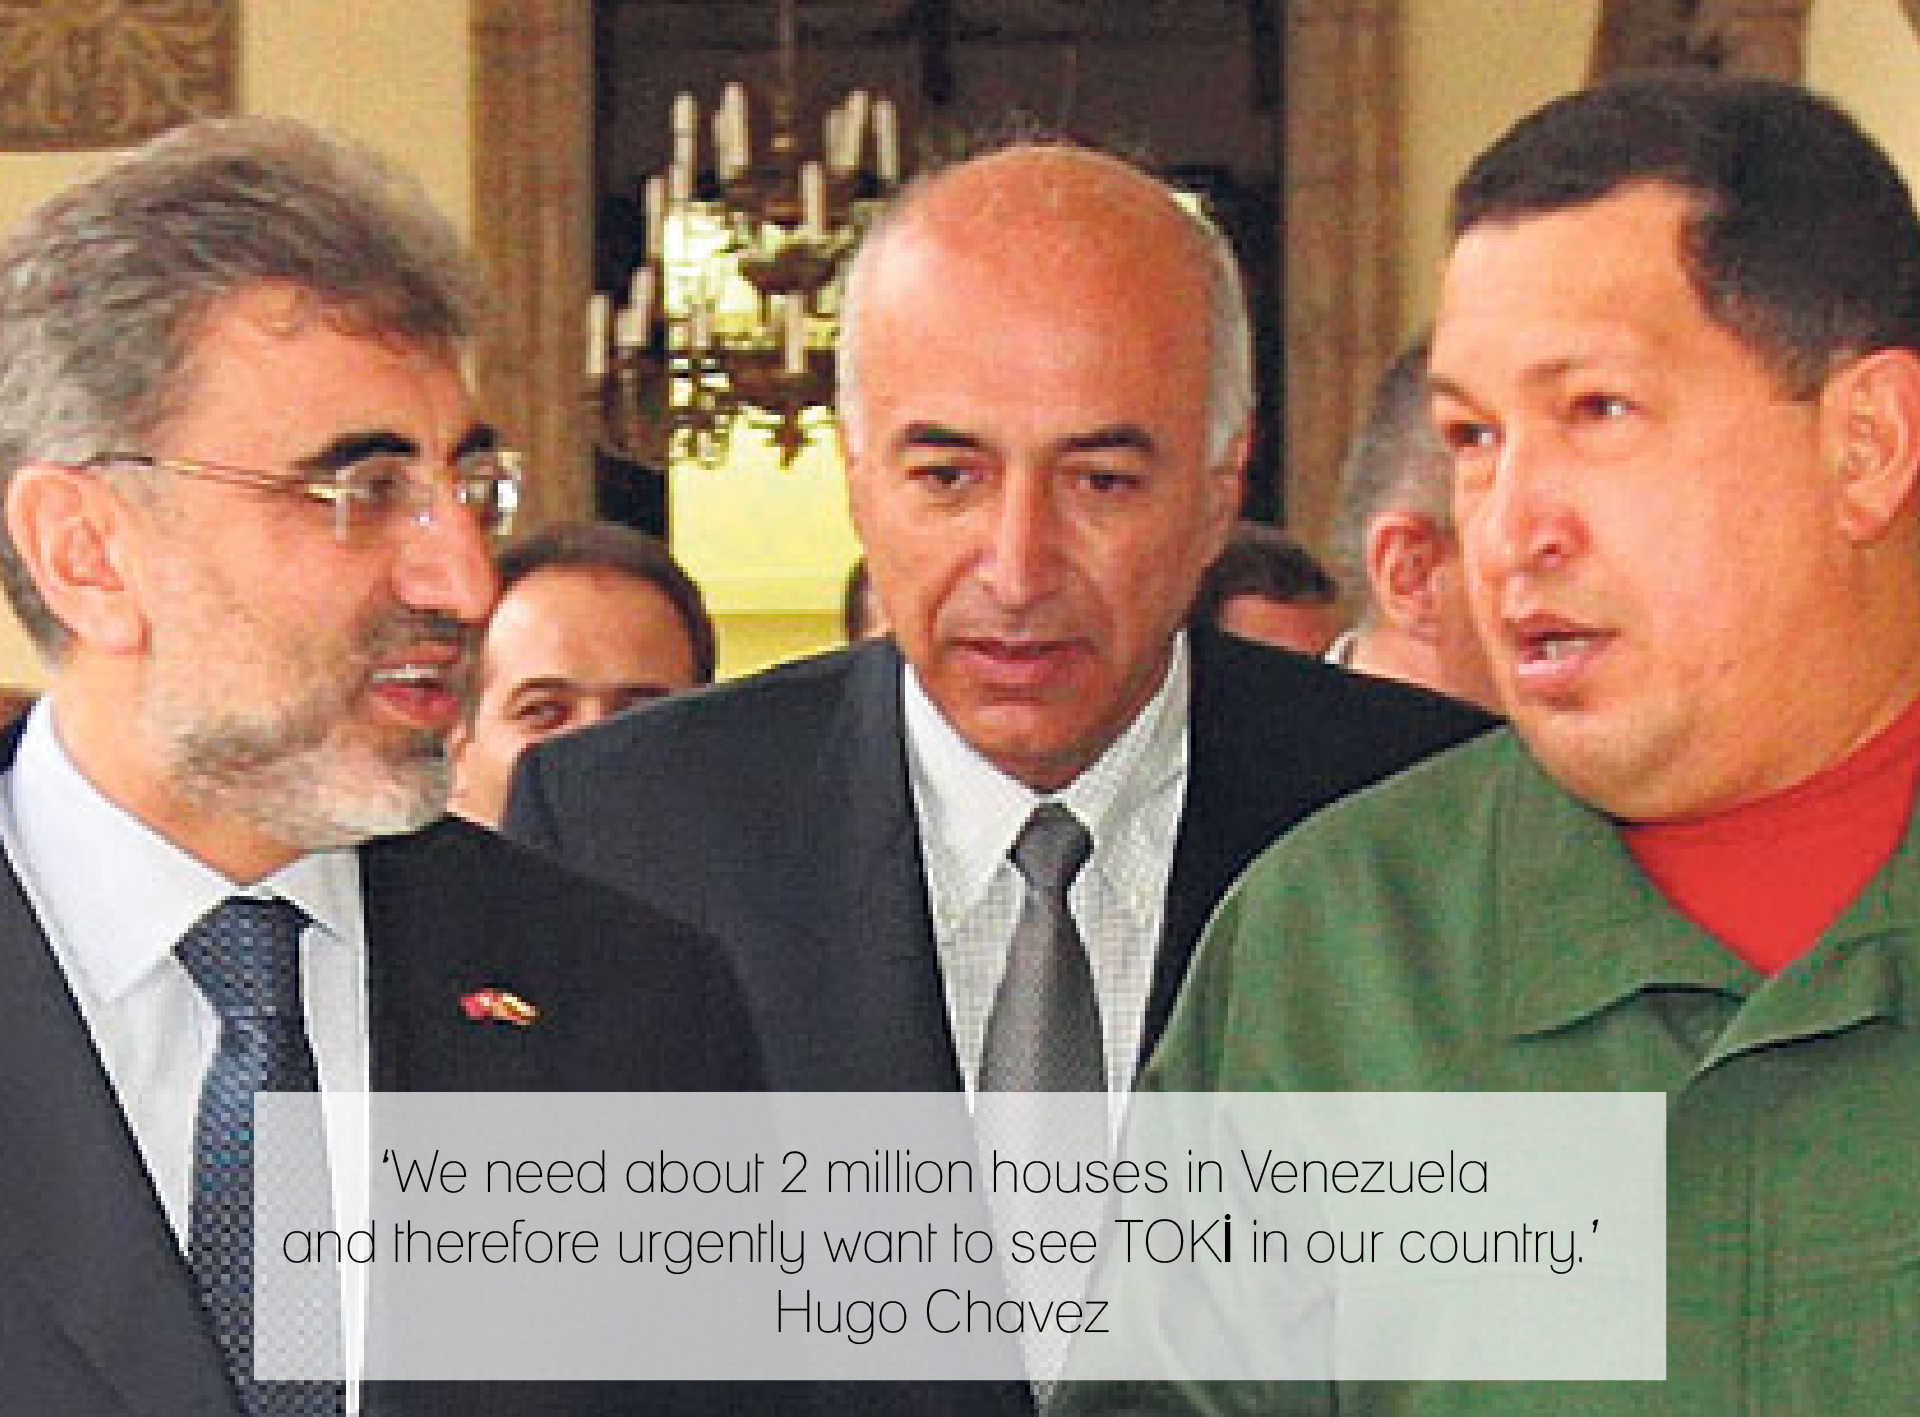 Hugo Chavez receives Energy and Natural Resources Minister Taner Yıldız at the presidential palace. 'We need about 2 million houses in Venezuela and therefore urgently want to see TOKİ in our country.'